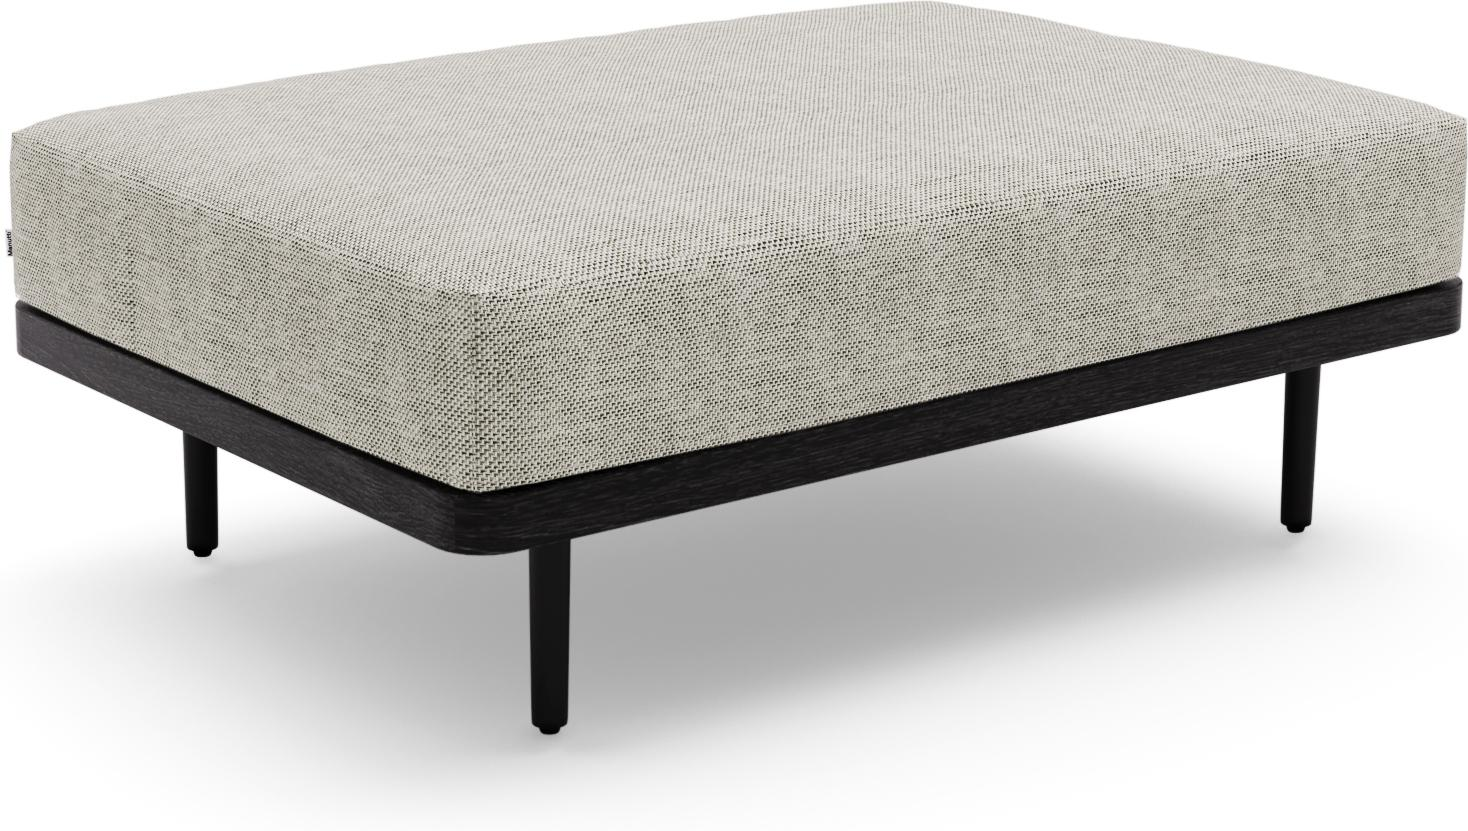 Flex Large footstool/Loungetable teak nero black